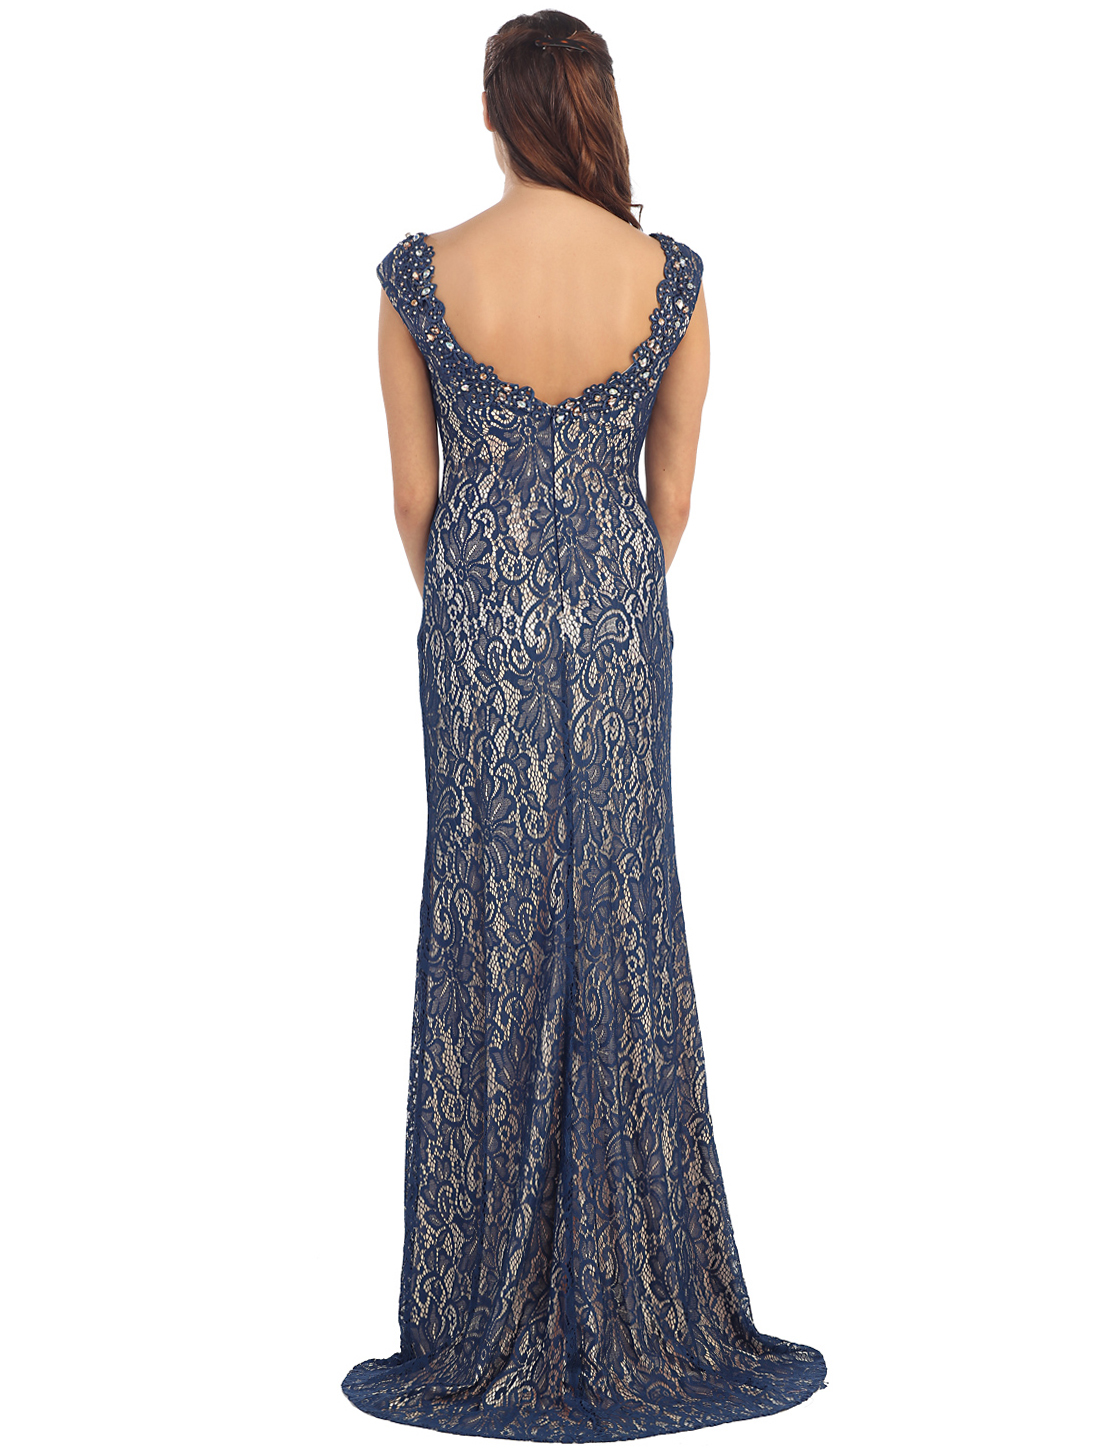 This beautiful lace overlay evening dress features scalloped neck with